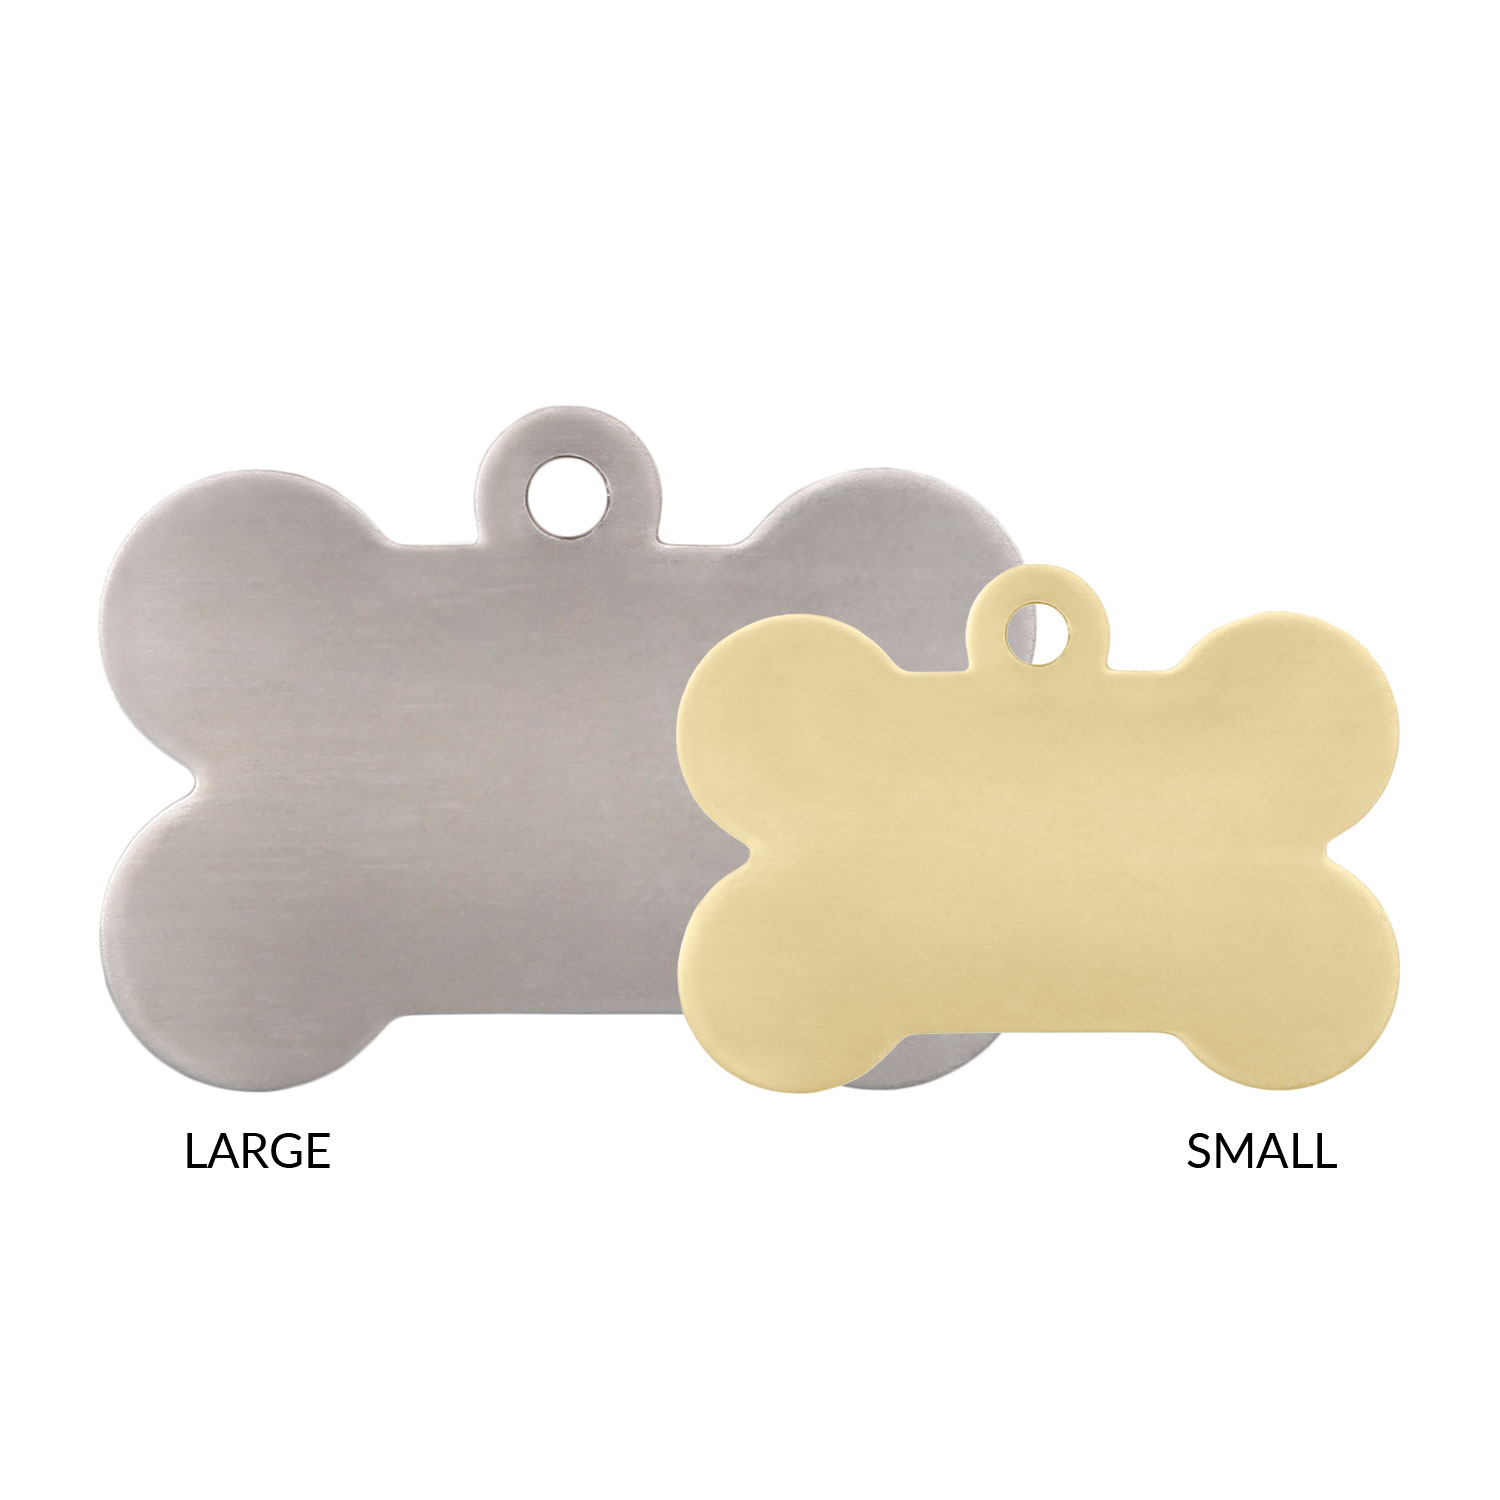 Bone ID Tag Sizes Comparison